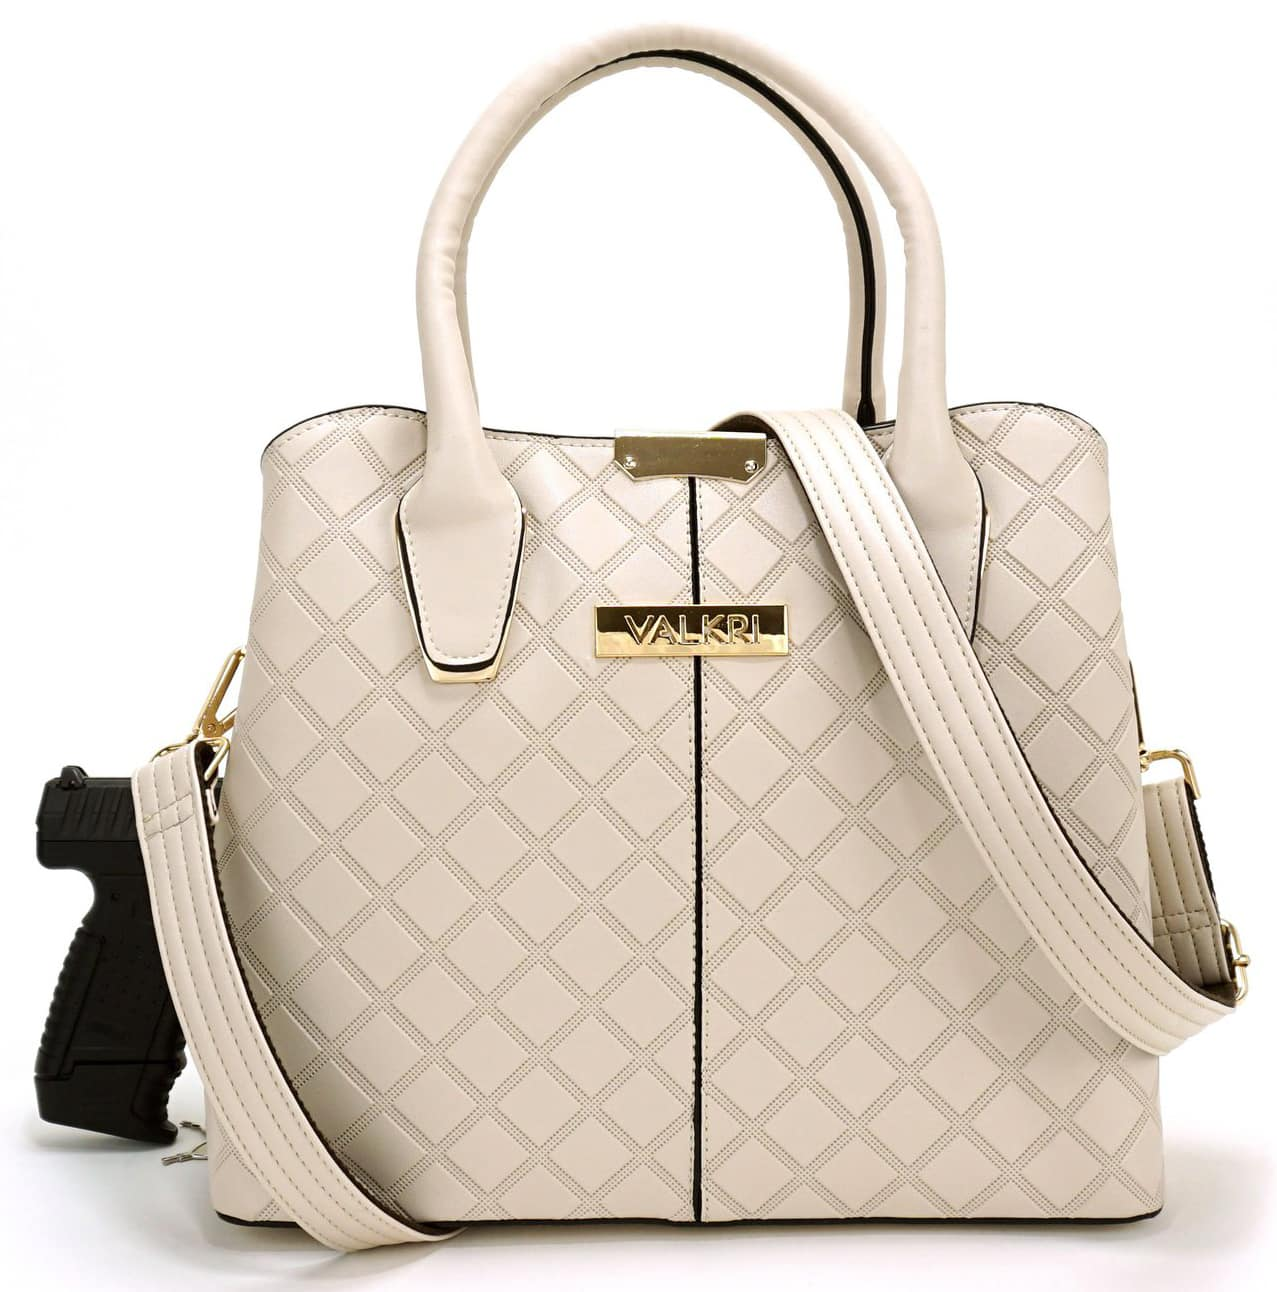 Stay safe without compromising style with Valkri's Juno concealed carry crossbody purse